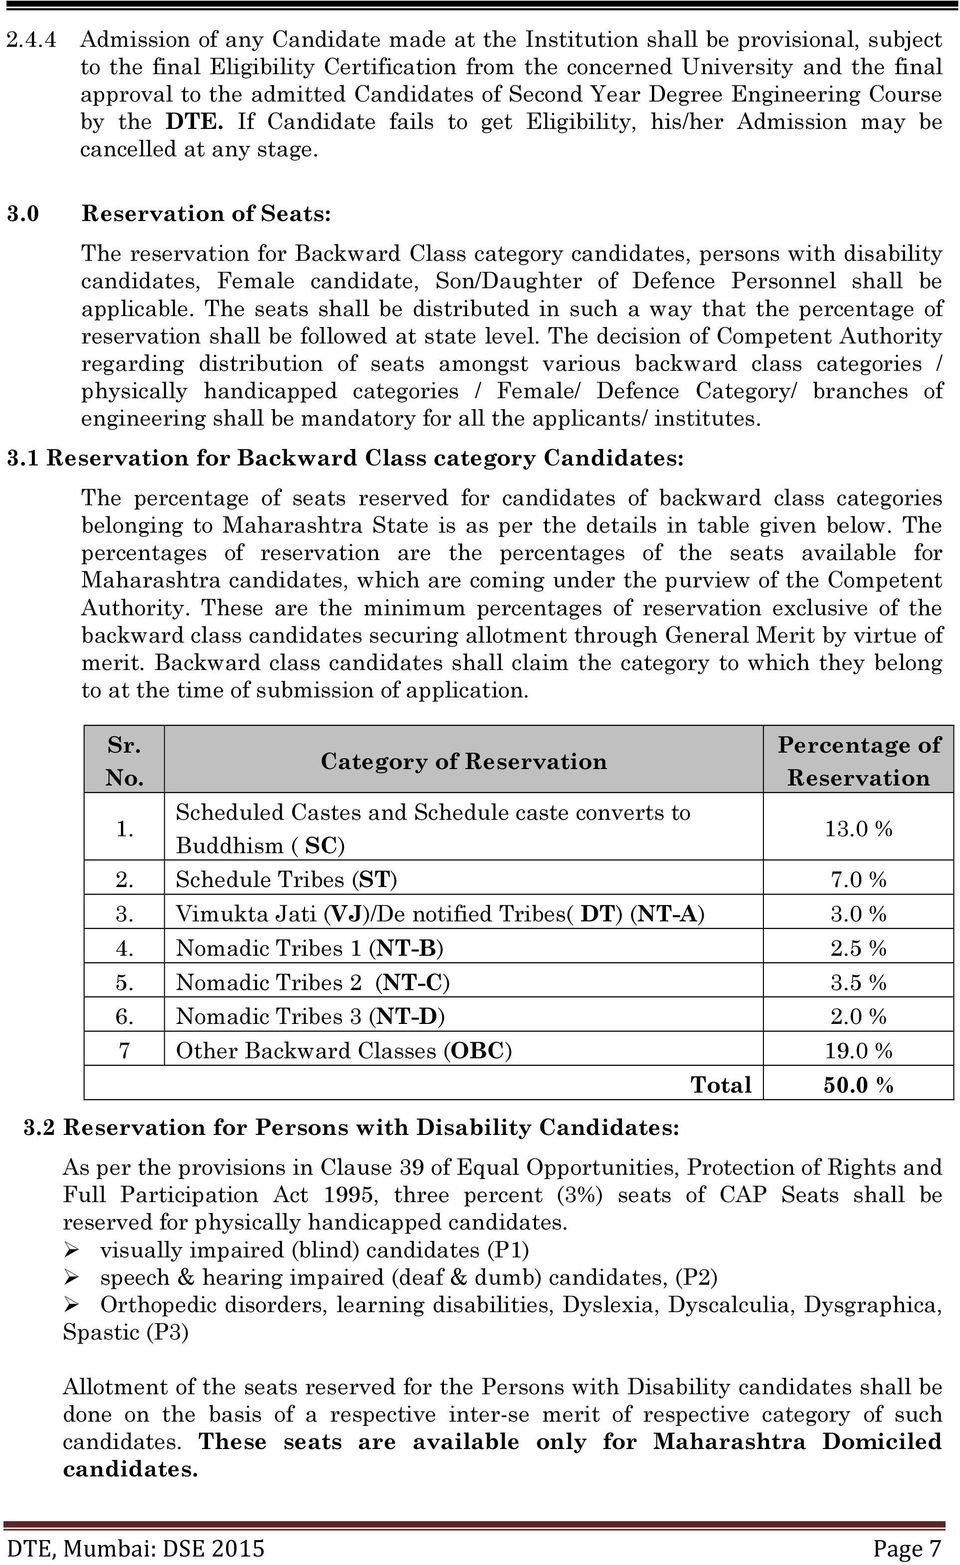 0 Reservation of Seats: The reservation for Backward Class category candidates, persons with disability candidates, Female candidate, Son/Daughter of Defence Personnel shall be applicable.